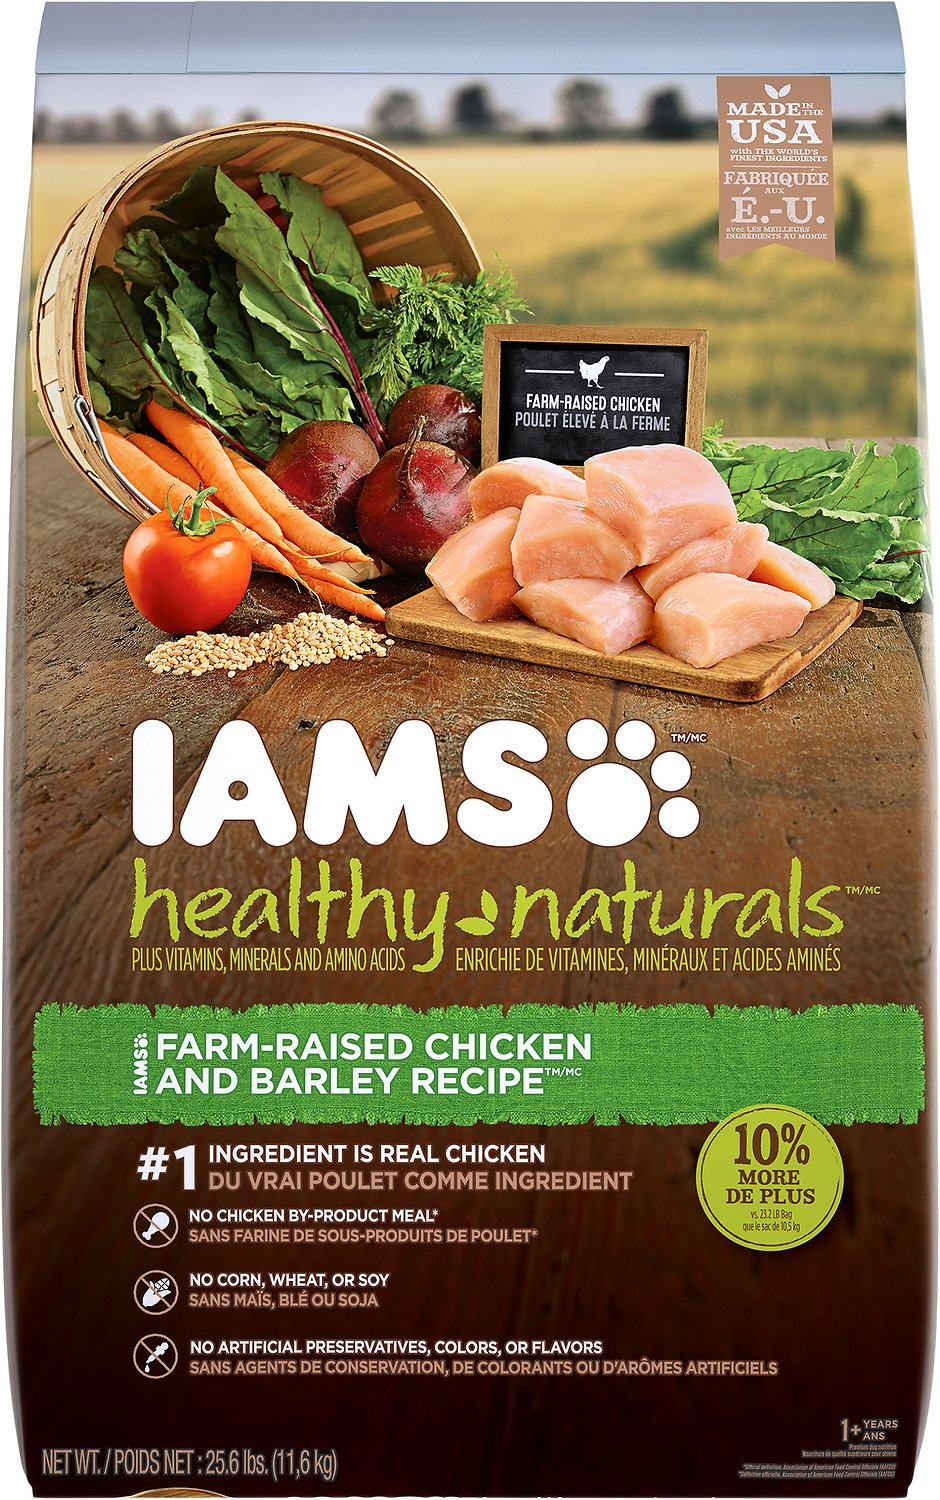 Iams Healthy Naturals Dog Food Review